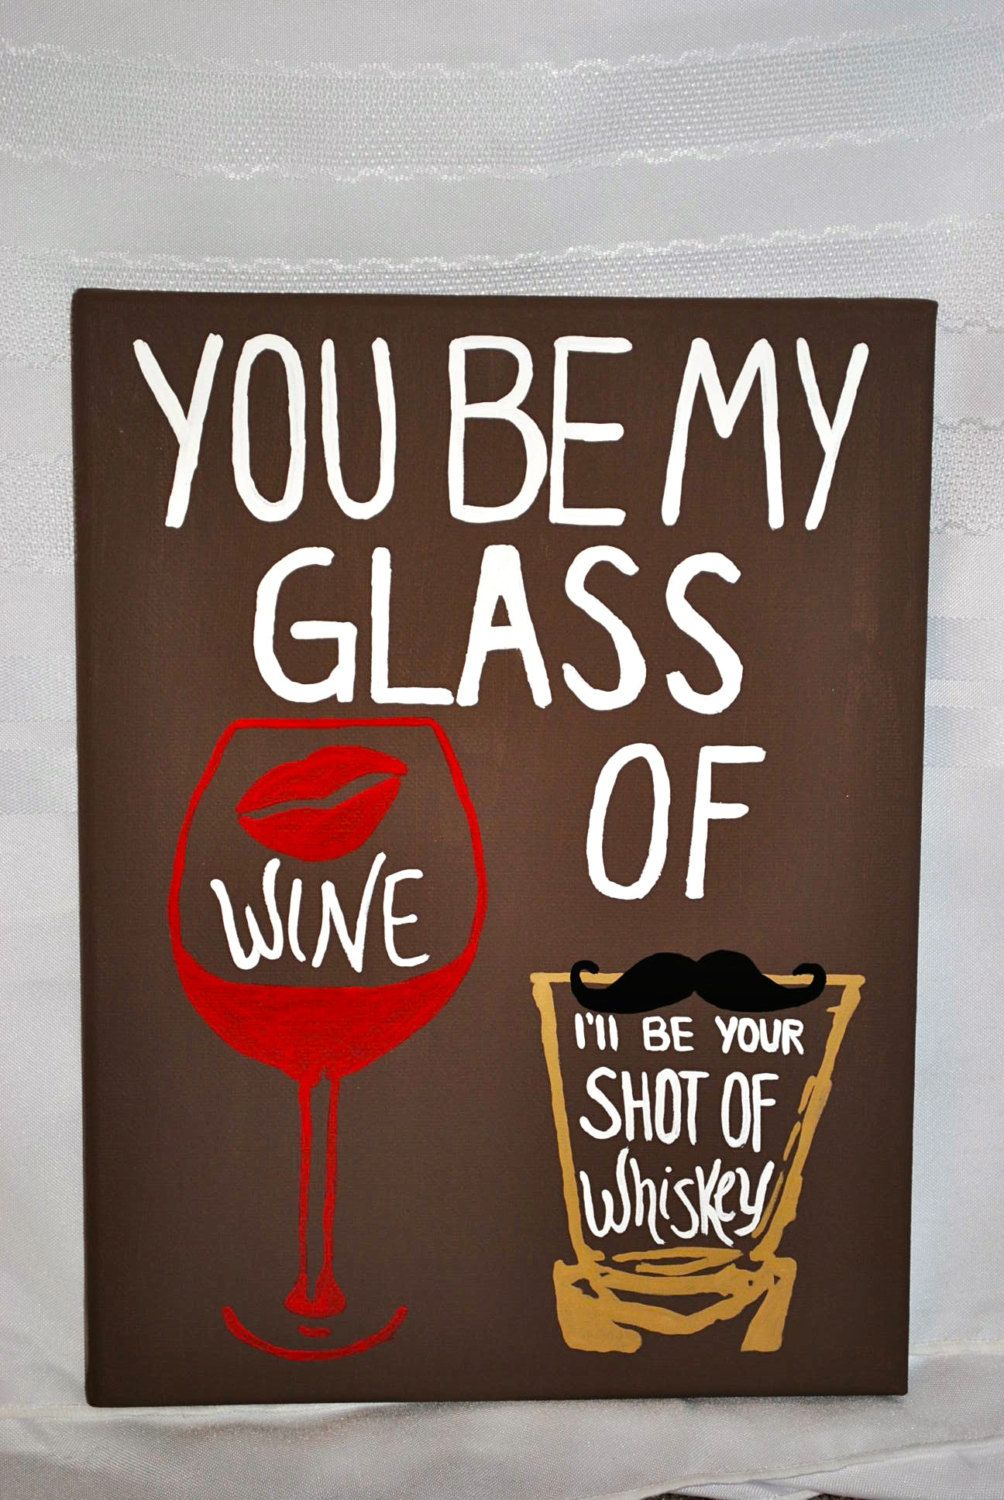 9 x 12 You Be My Glass of Wine I'll Be Your Shot by ChannCreations